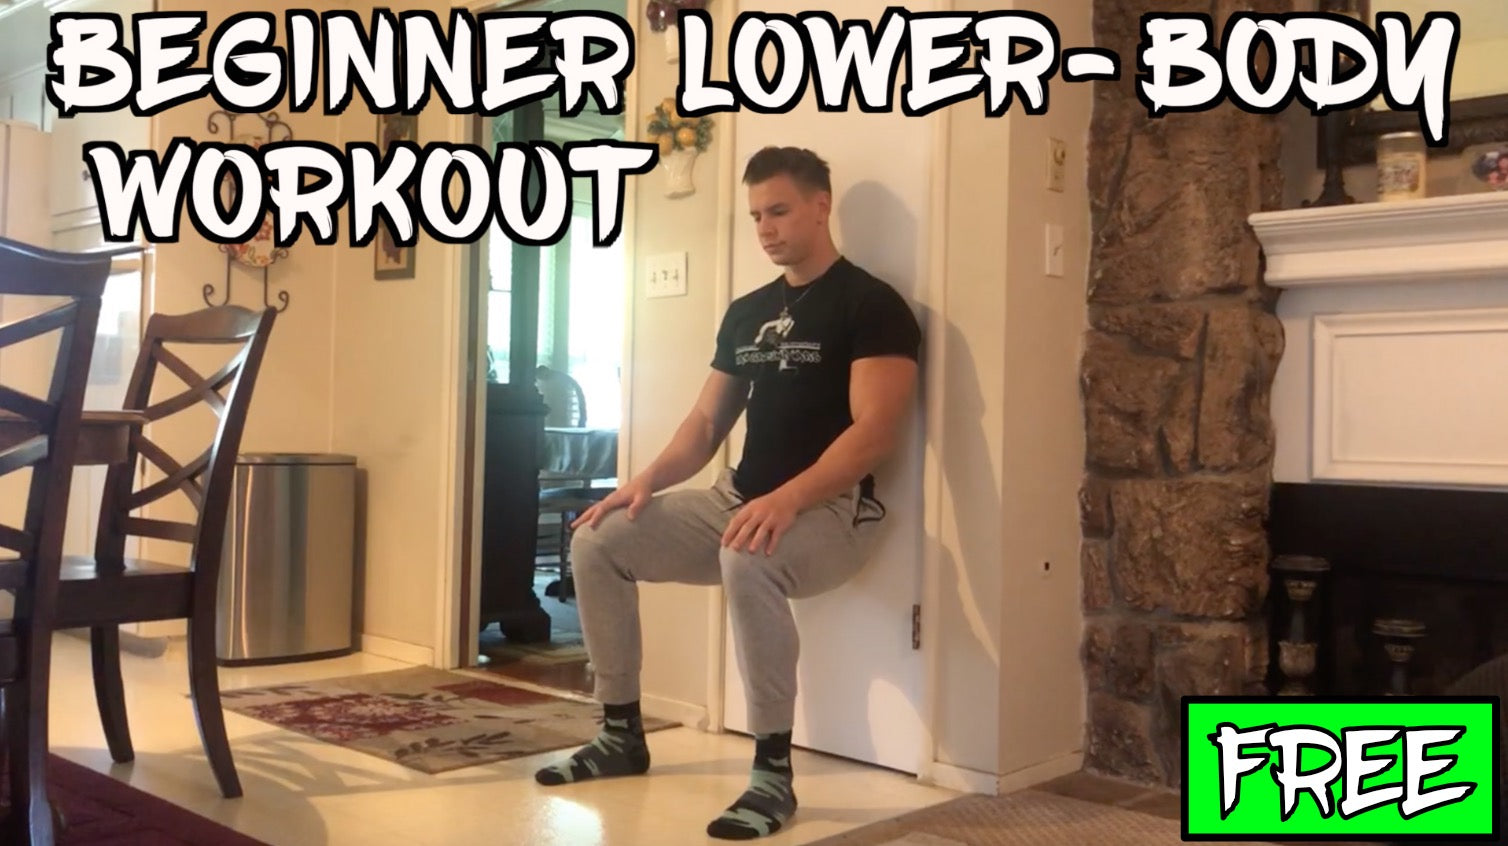 Free Beginner Lower-Body At Home Workout